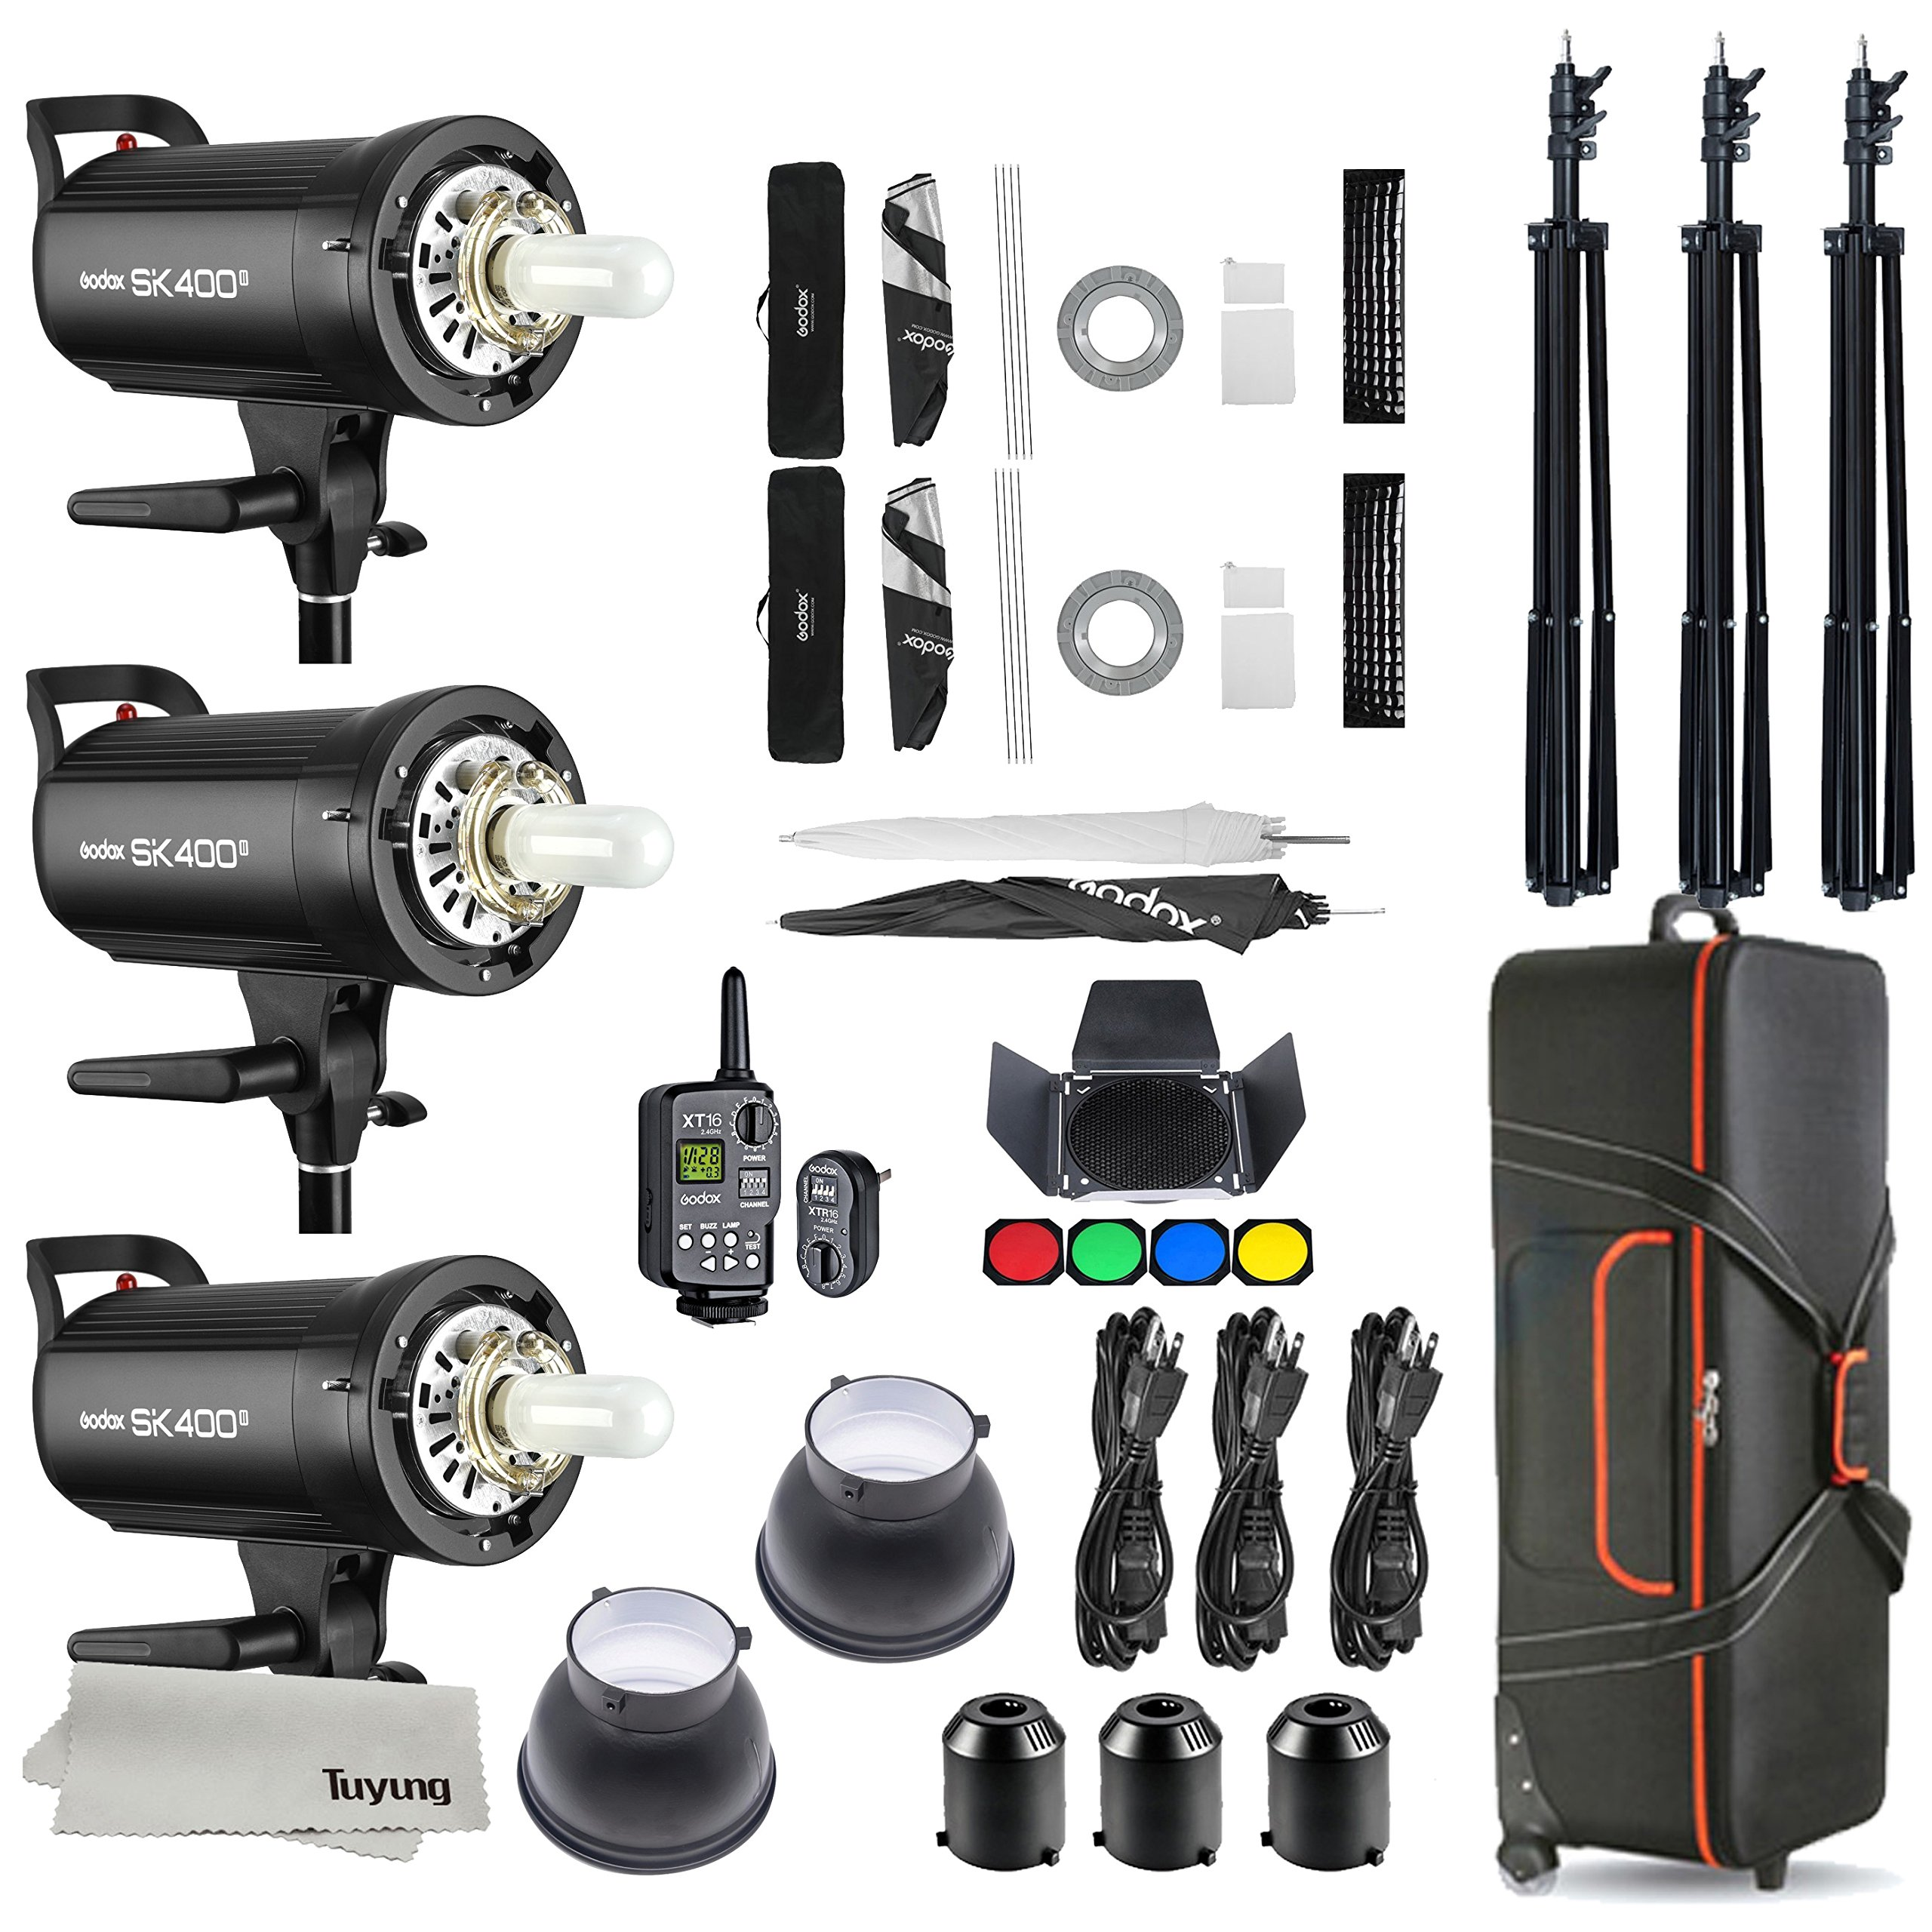 Godox SK400II 3 x 400Ws 2.4G Bowens Mount Strobe Flash Kits for Photography Lighting Portrait Photography - Light Stands, Softbox, Barn Door, Umbrella, Wireless Trigger, Carrying Case Accessory Kits by Godox